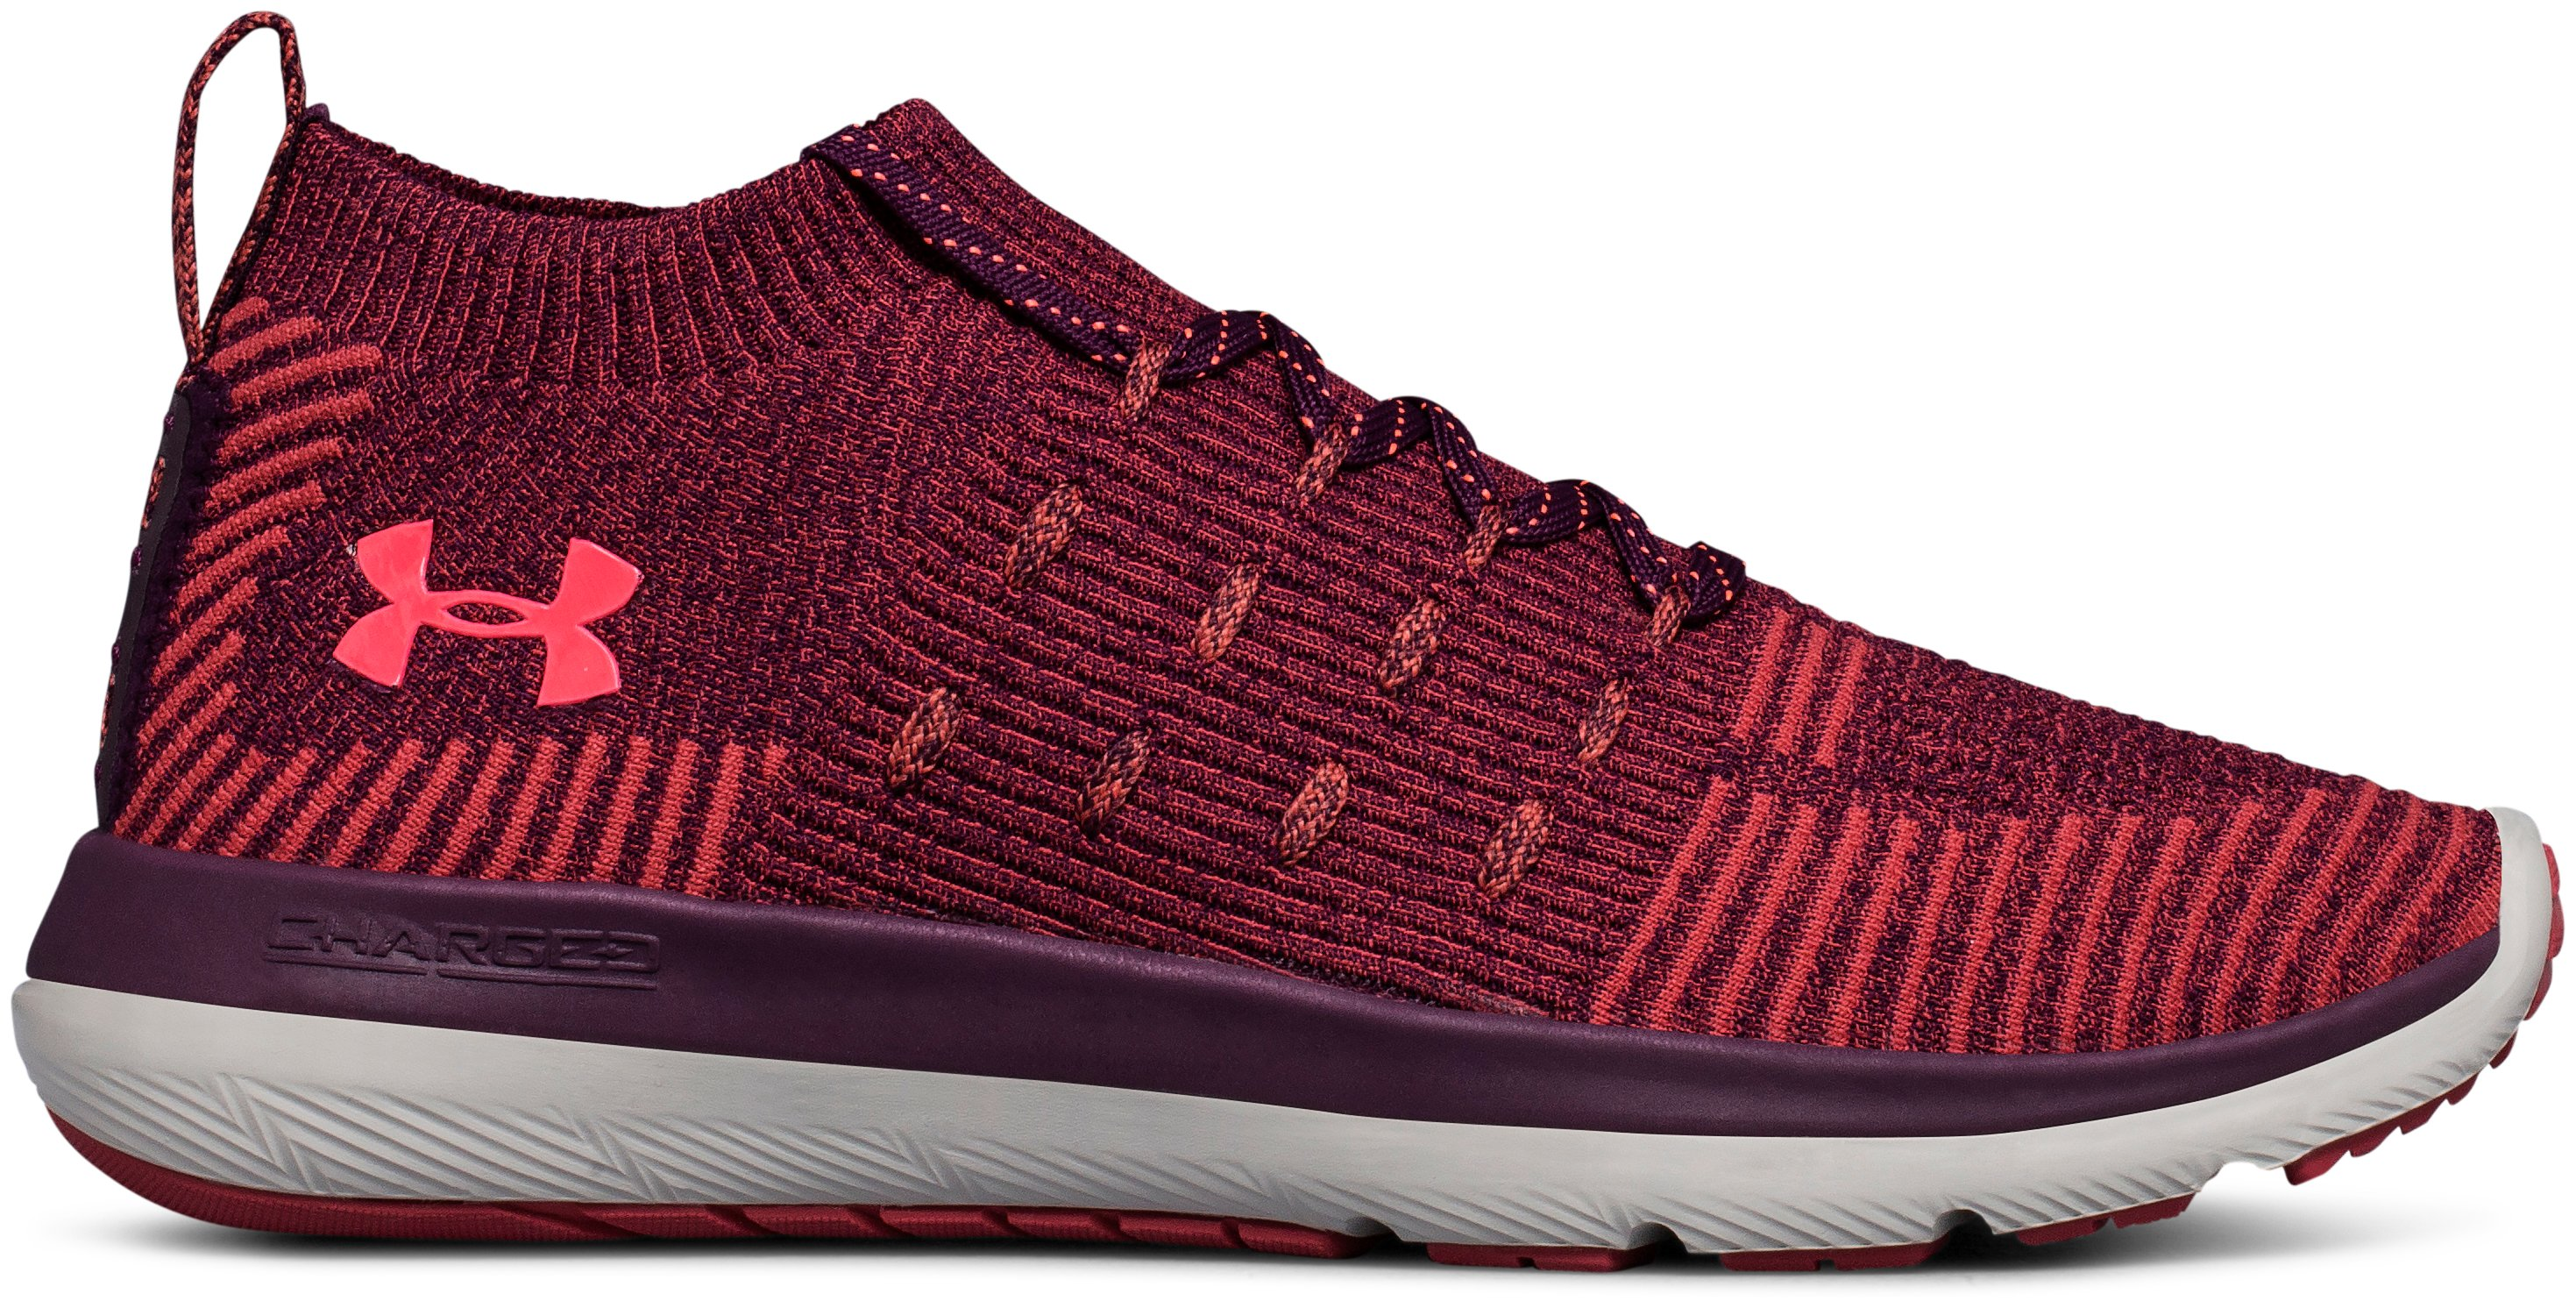 Women's UA Slingflex Rise Running Shoes 6 Colors $75.99 - $85.99